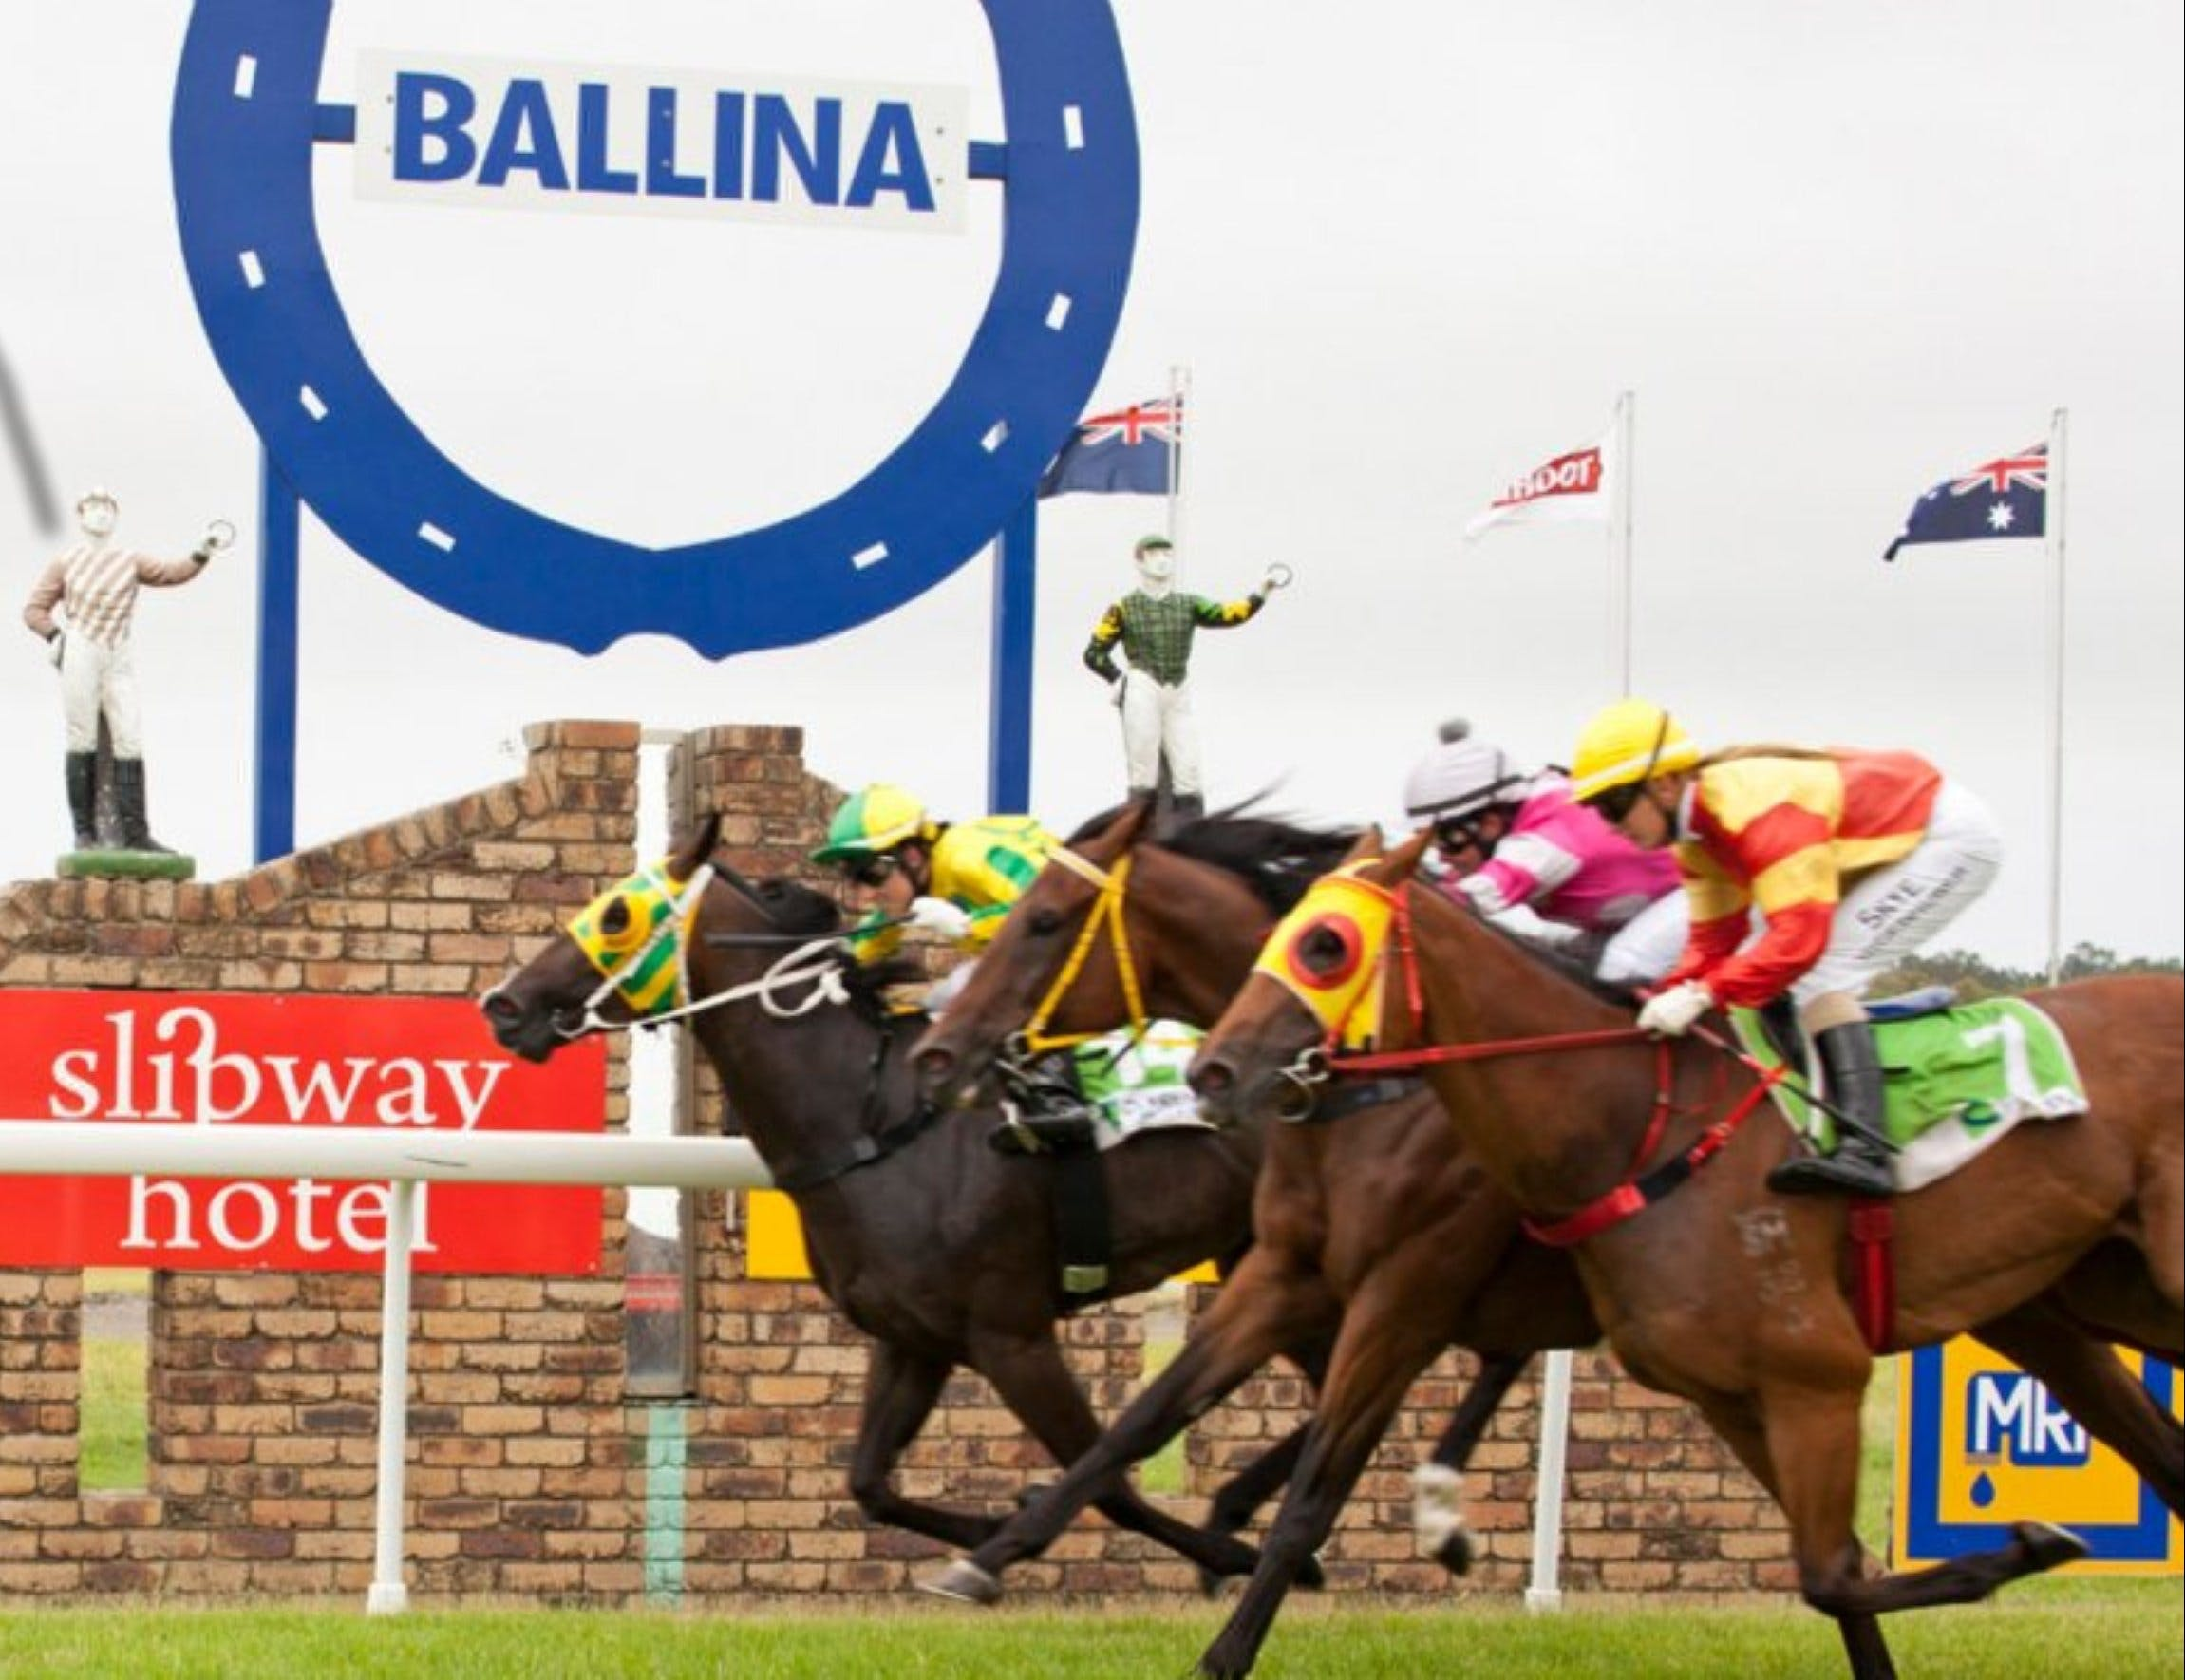 Ballina Boxing Day Races - Newcastle Accommodation